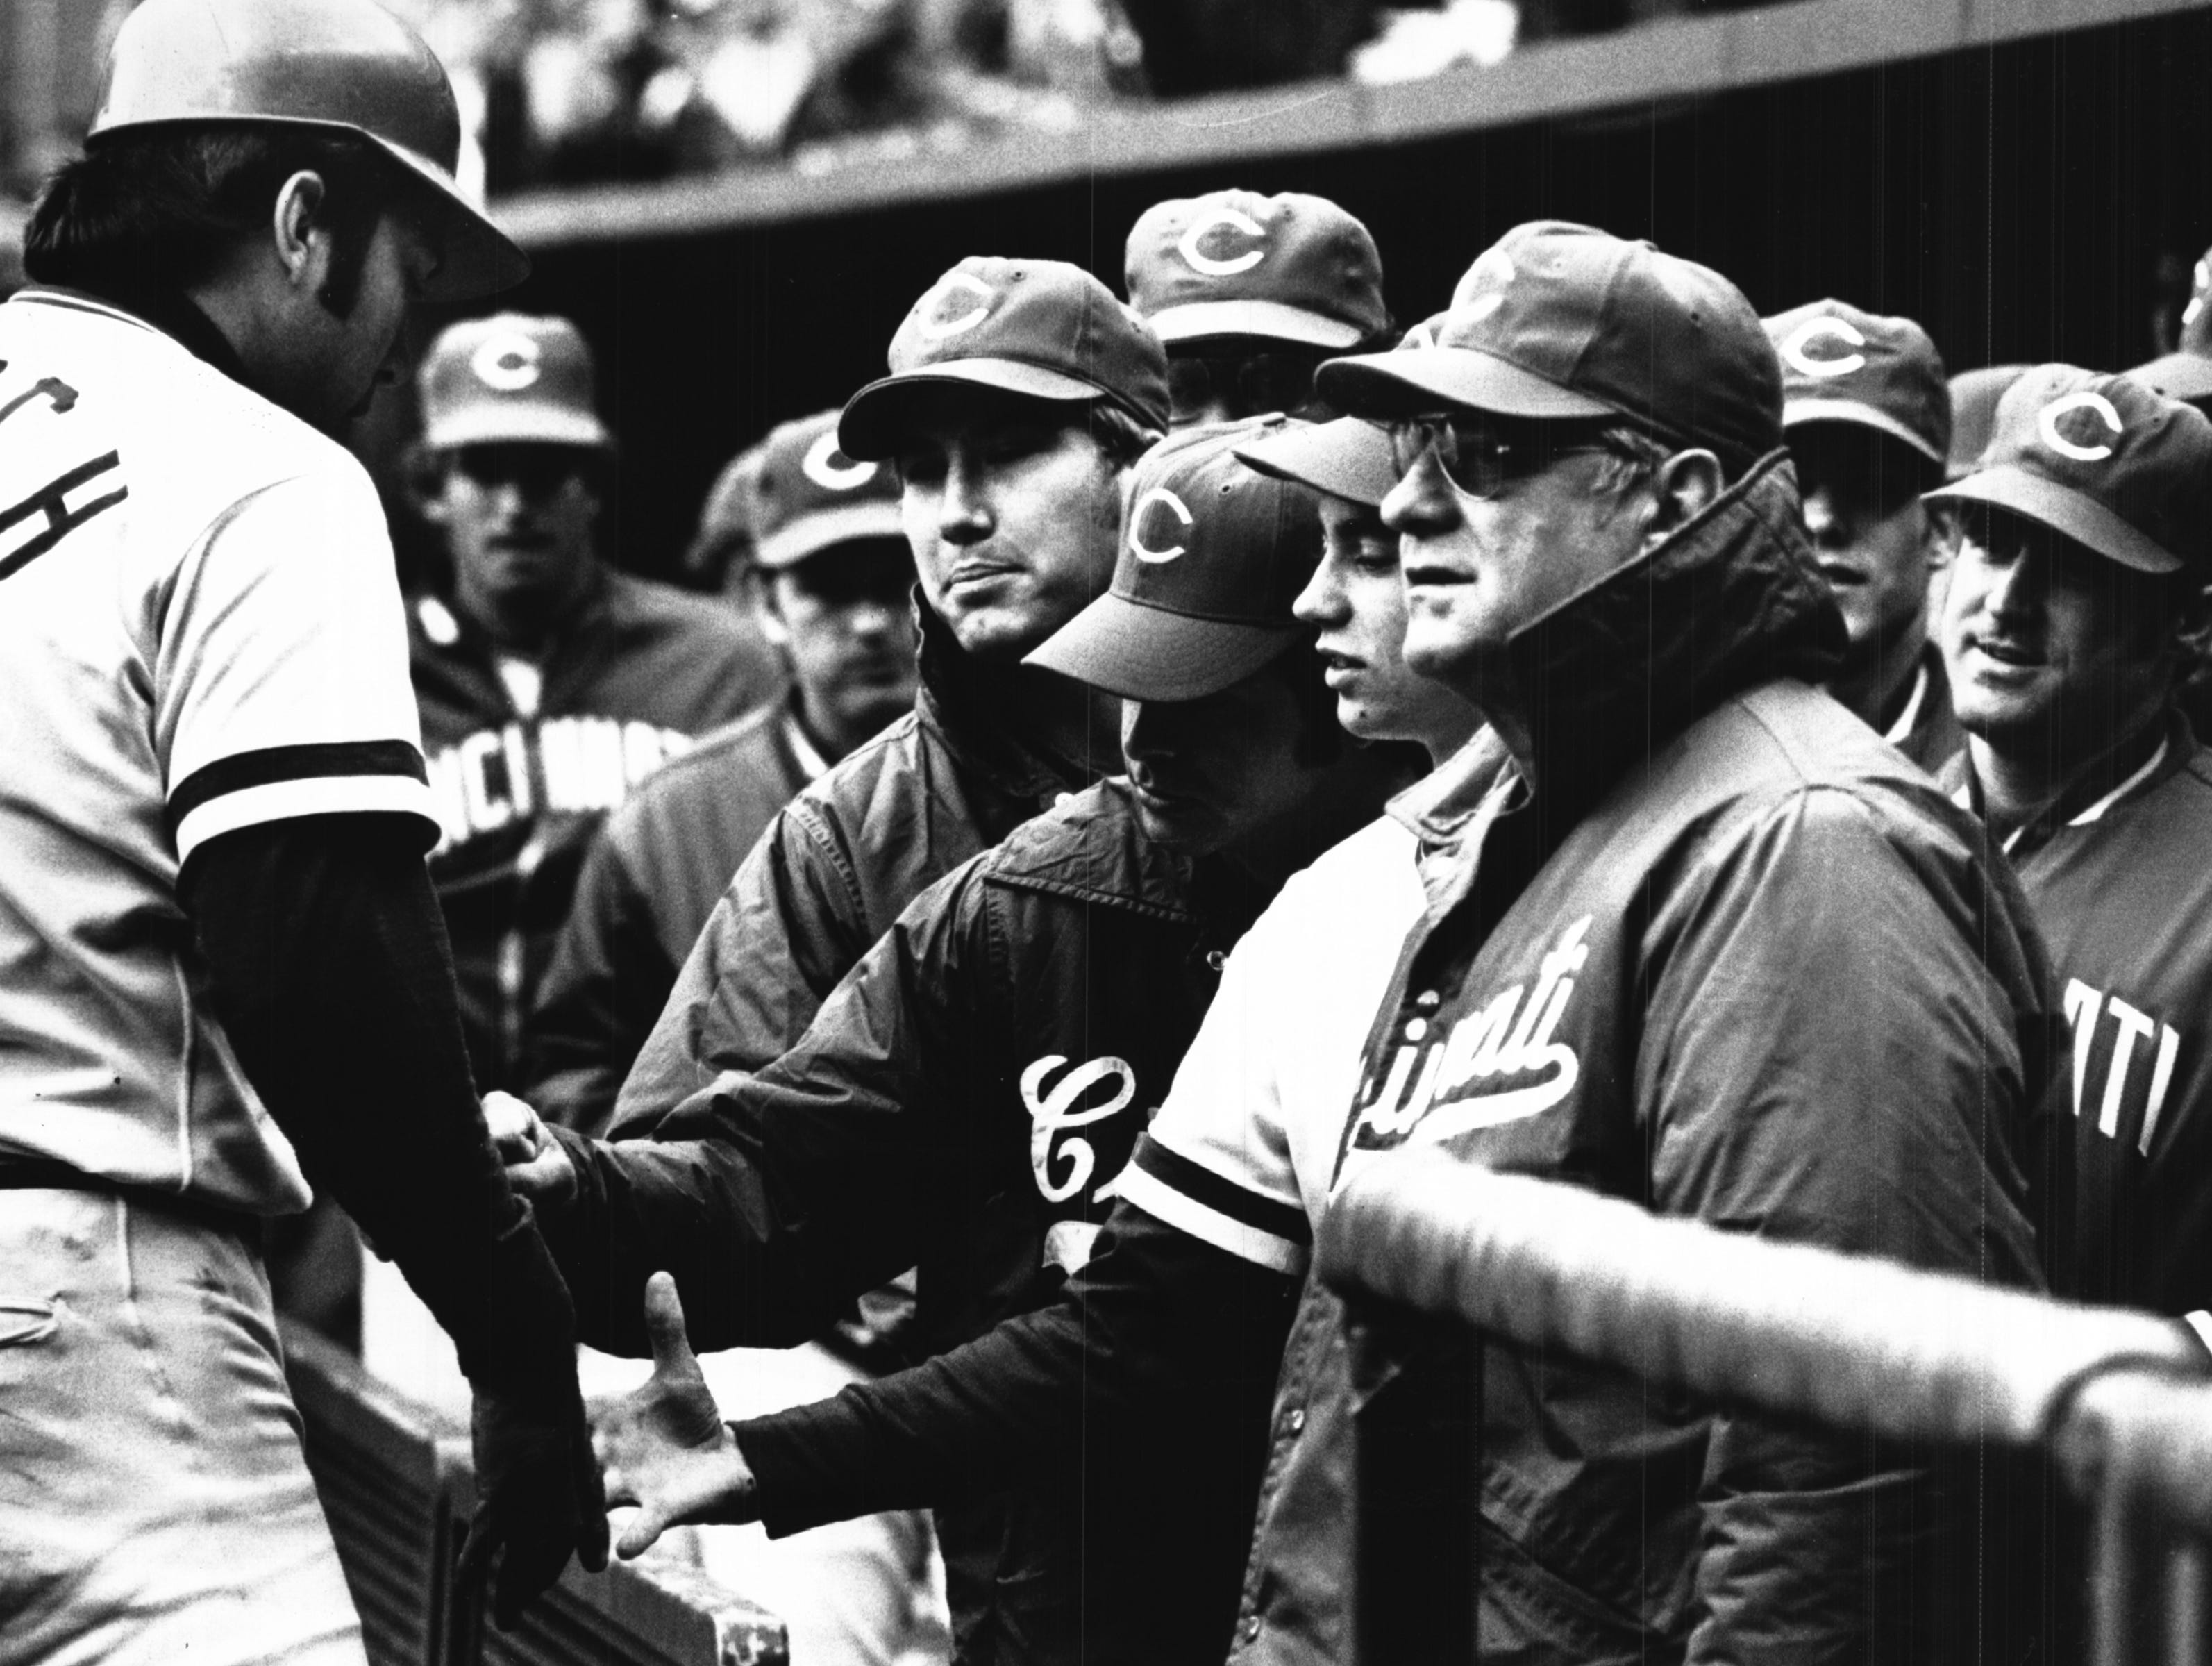 SEPTEMBER 30, 1974: Bench Warmers: You might say Johnny Bench got a chilly reception after his three-run homer in the sixth inning, the way his Reds teammates are dressed on the bench at frigid Riverfront Sunday, 9/29/74. The Enquirer/Ed Reinke